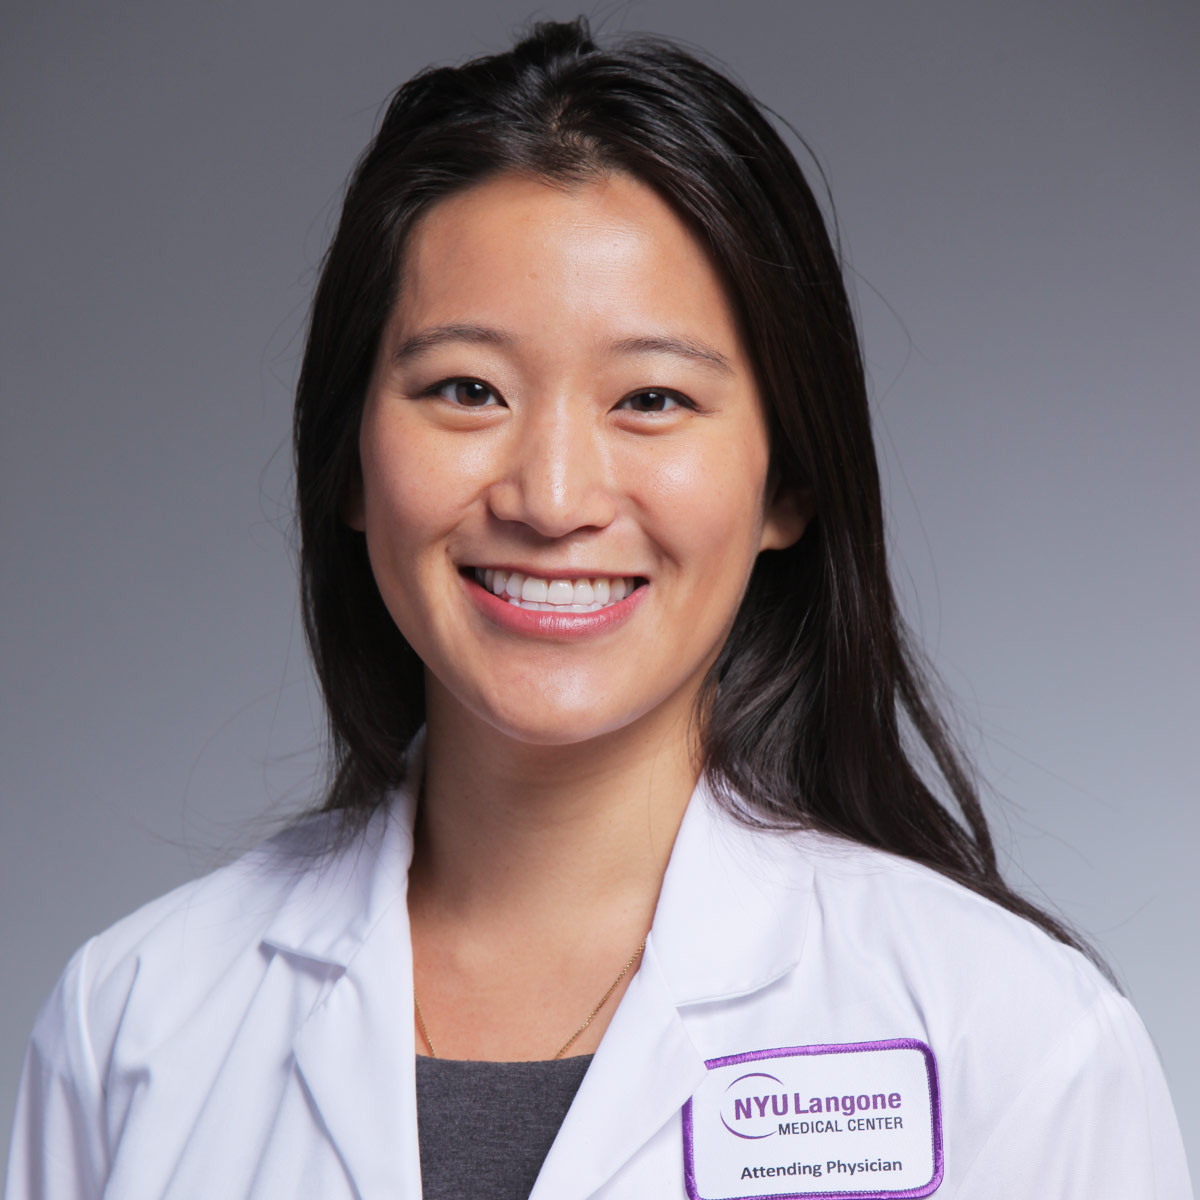 Lea Ann Chen at [NYU Langone Medical Center]